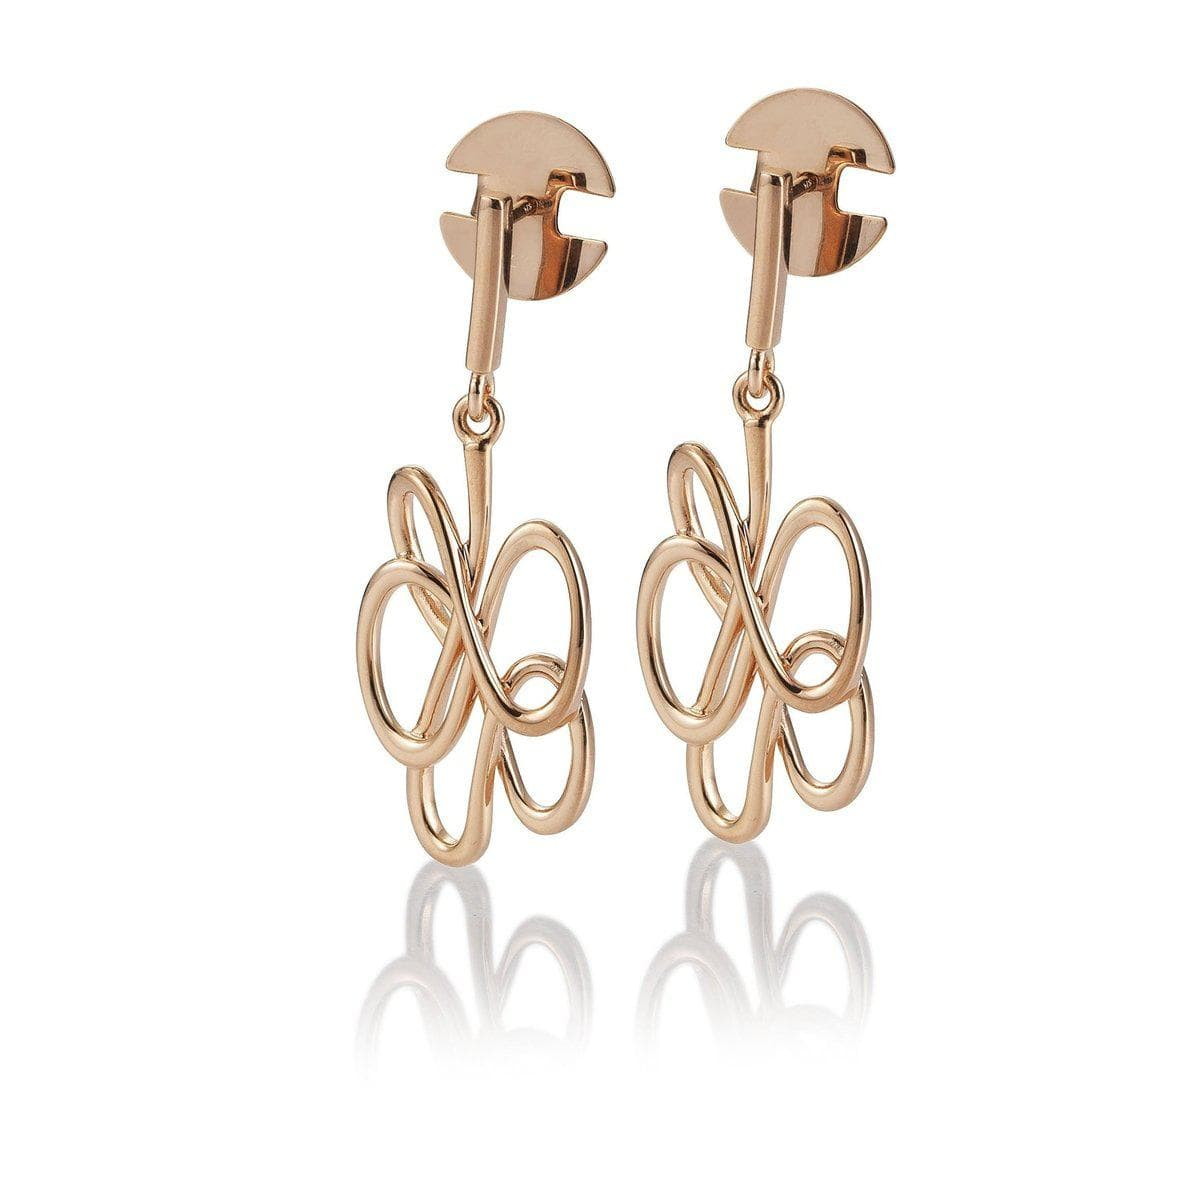 Rose Gold Plated Sterling Silver Earrings - 14/02626-Breuning-Renee Taylor Gallery